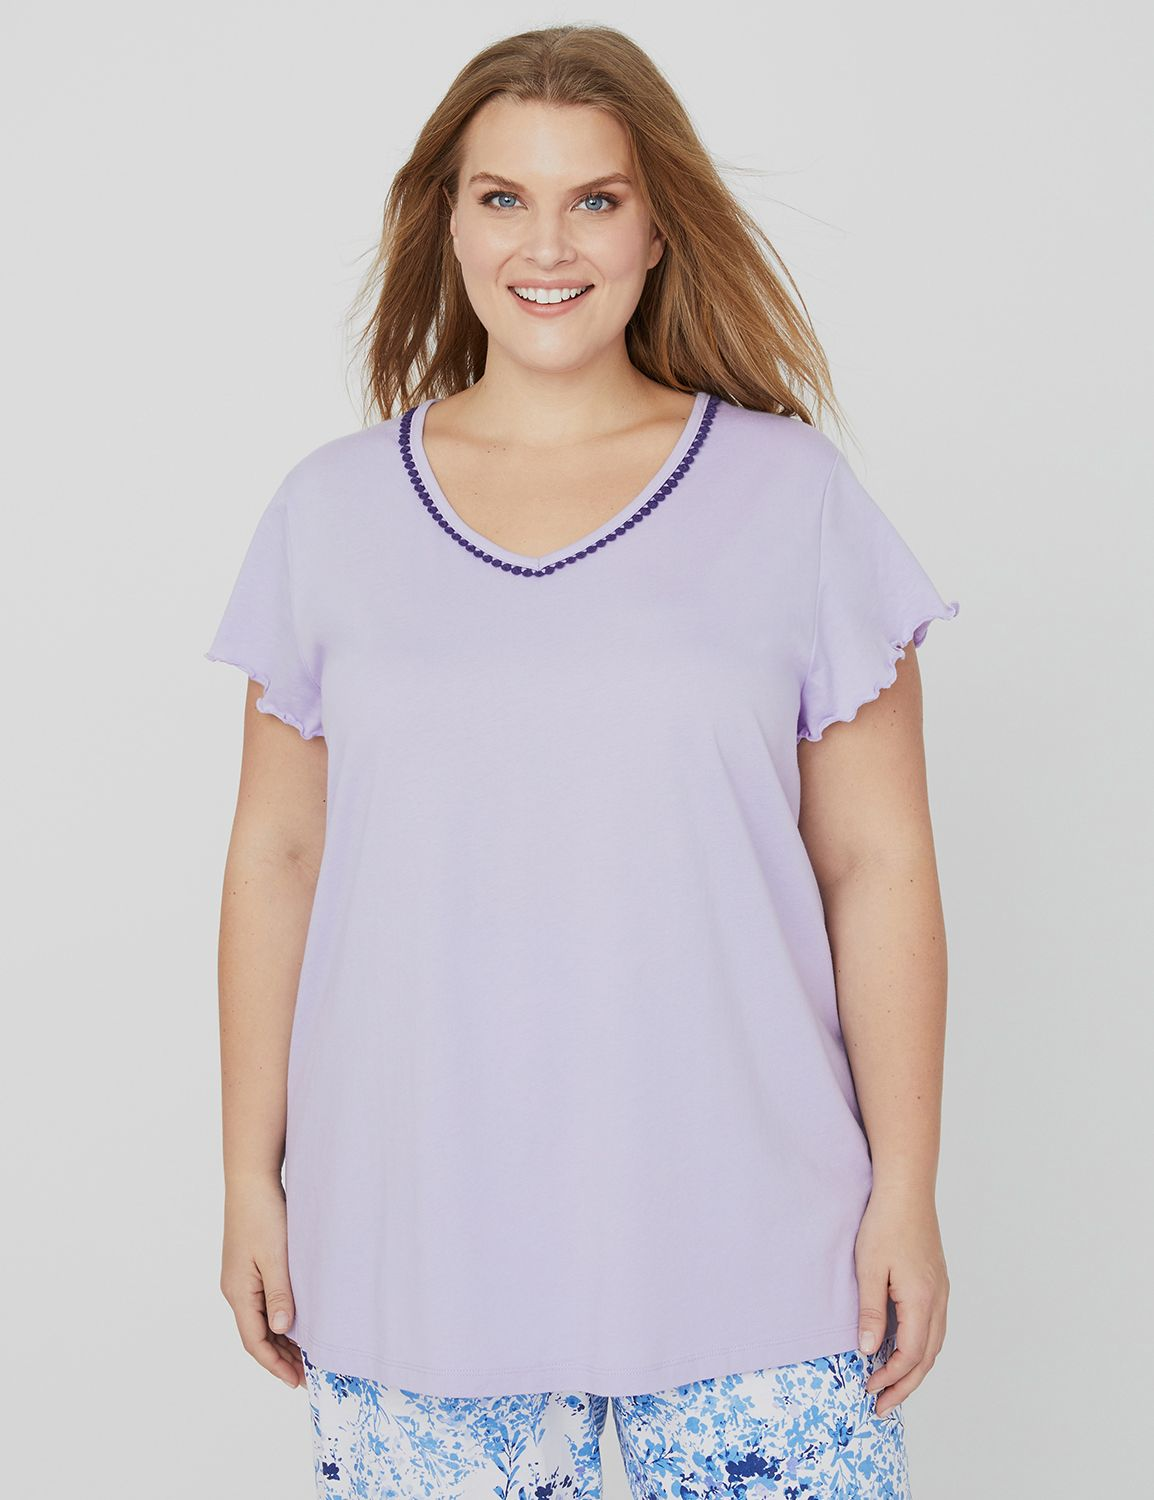 All The Details Sleep Tee 1088483- Ruffle Sleeve Tee w/ pom p MP-300096232